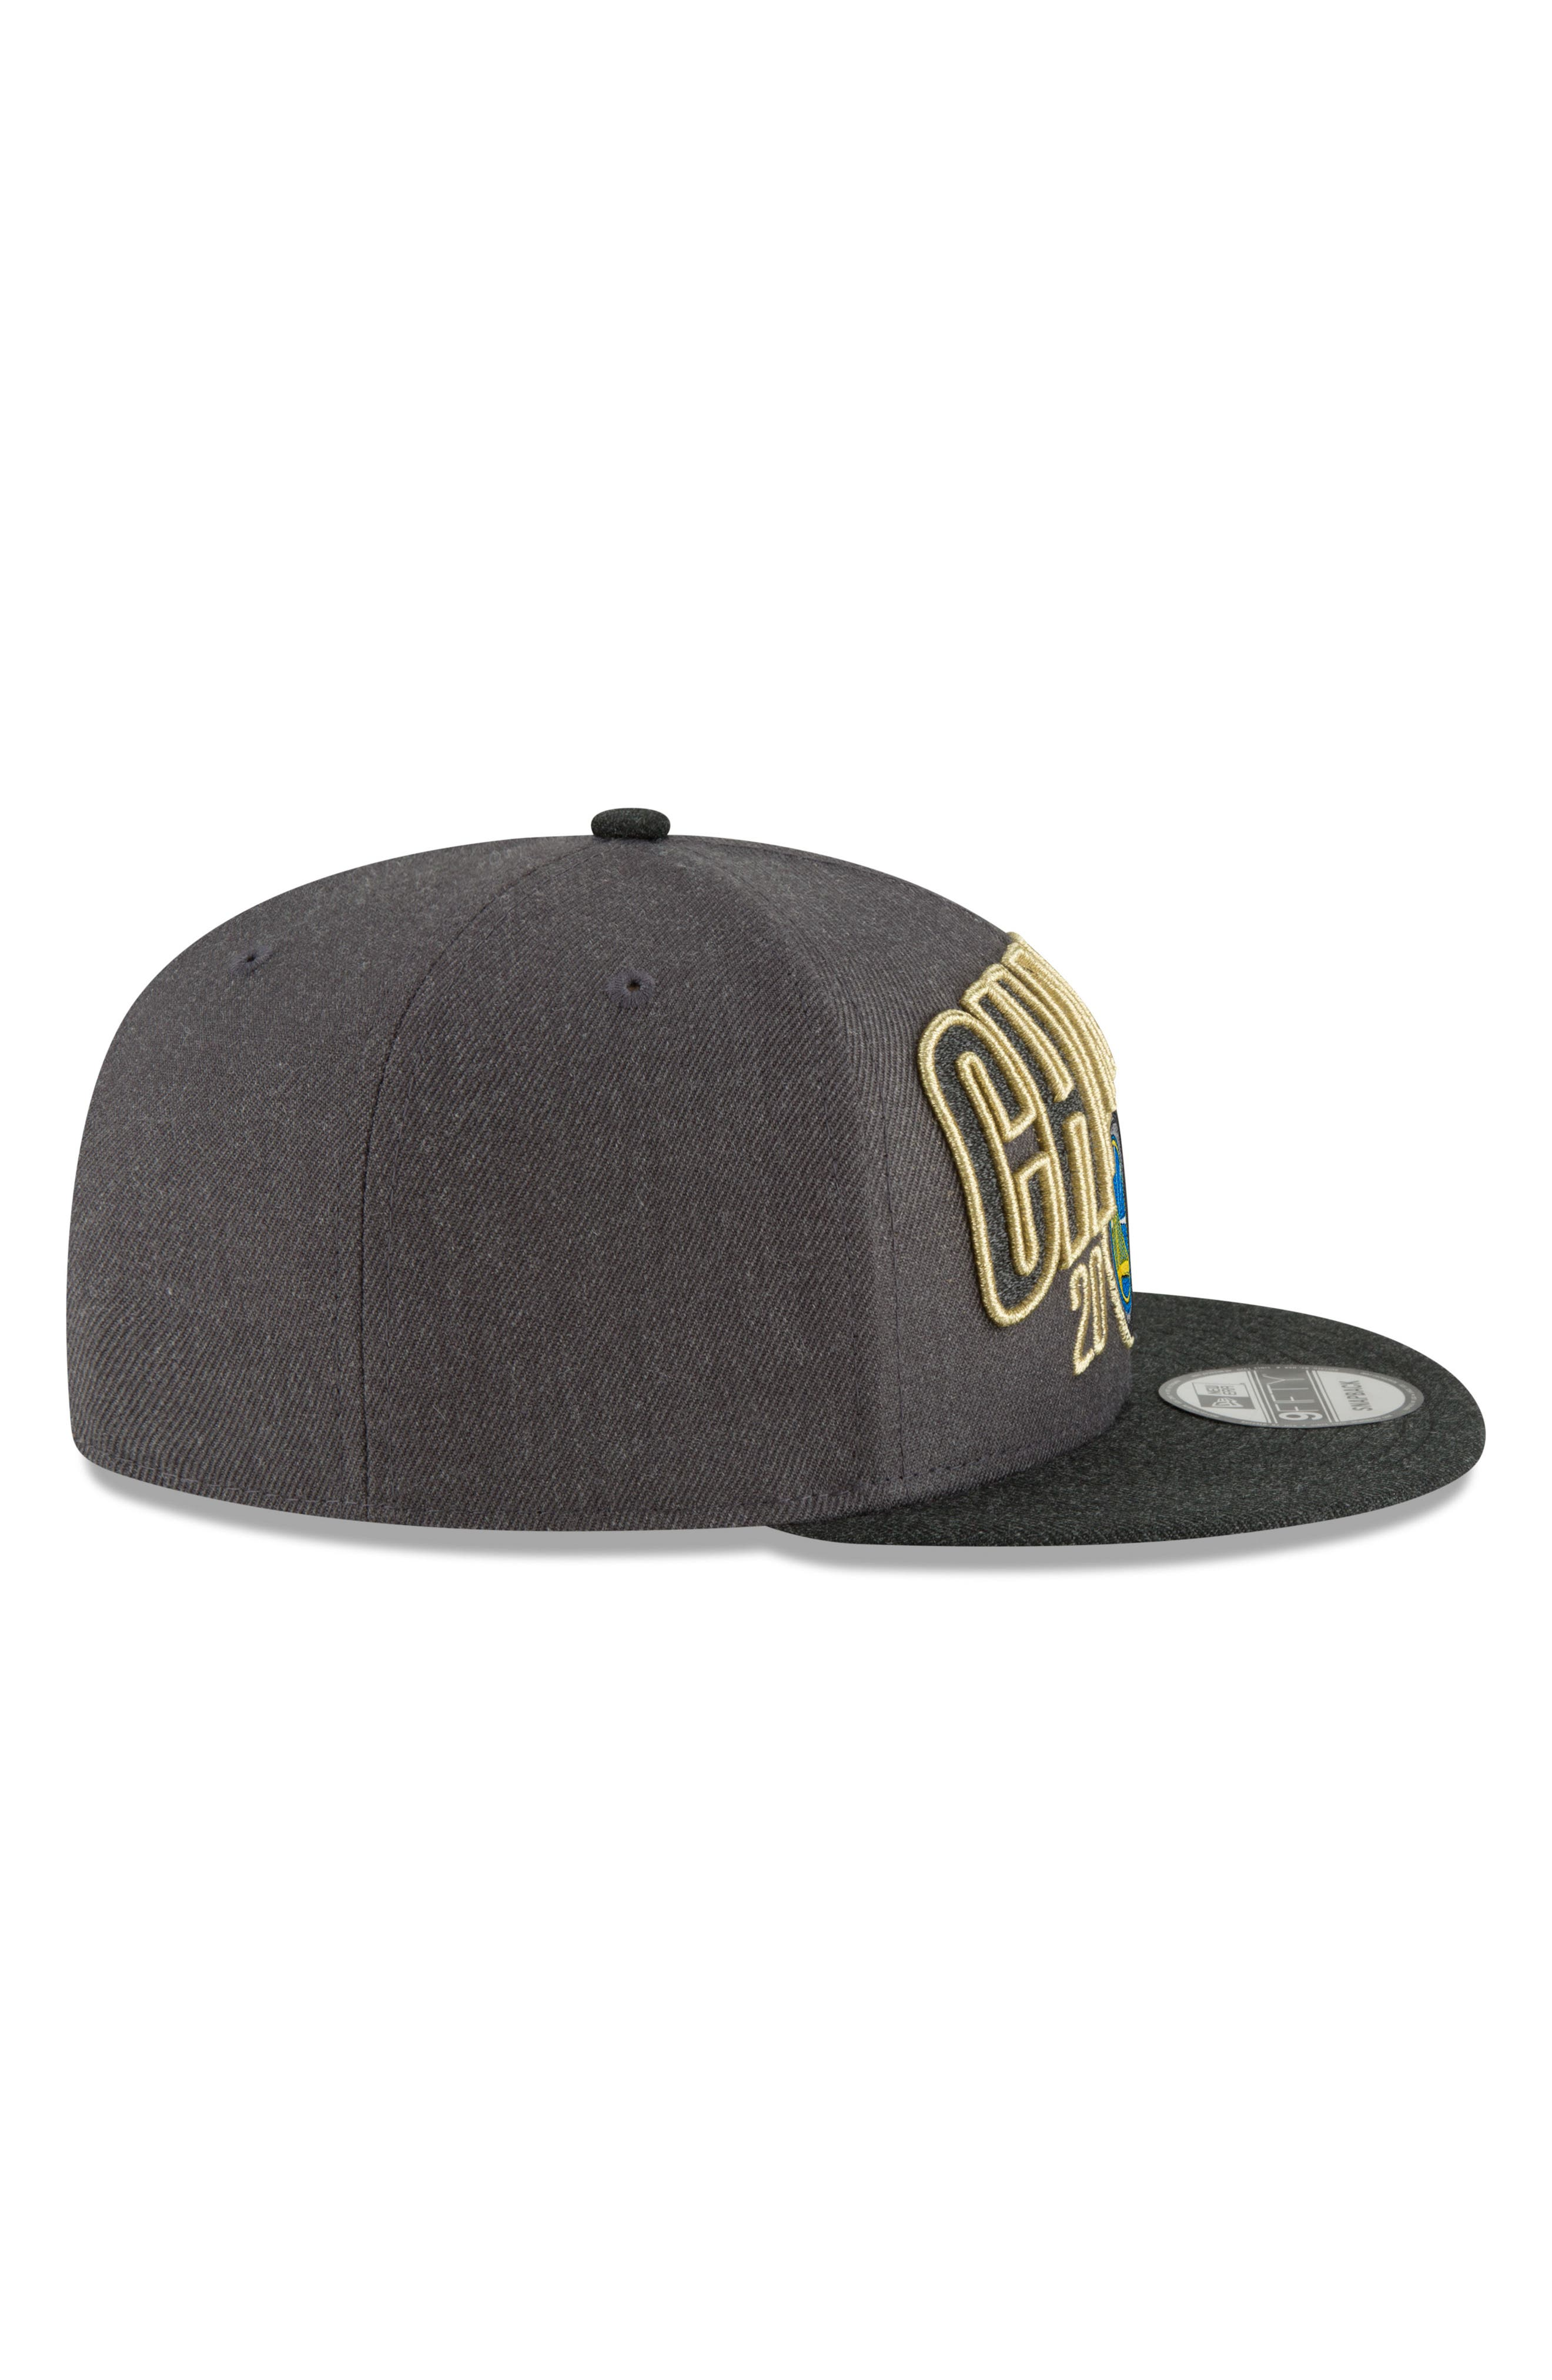 2018 NBA Champions - Golden State Warriors 9Fifty Snapback Cap,                             Alternate thumbnail 2, color,                             Golden State Warriors